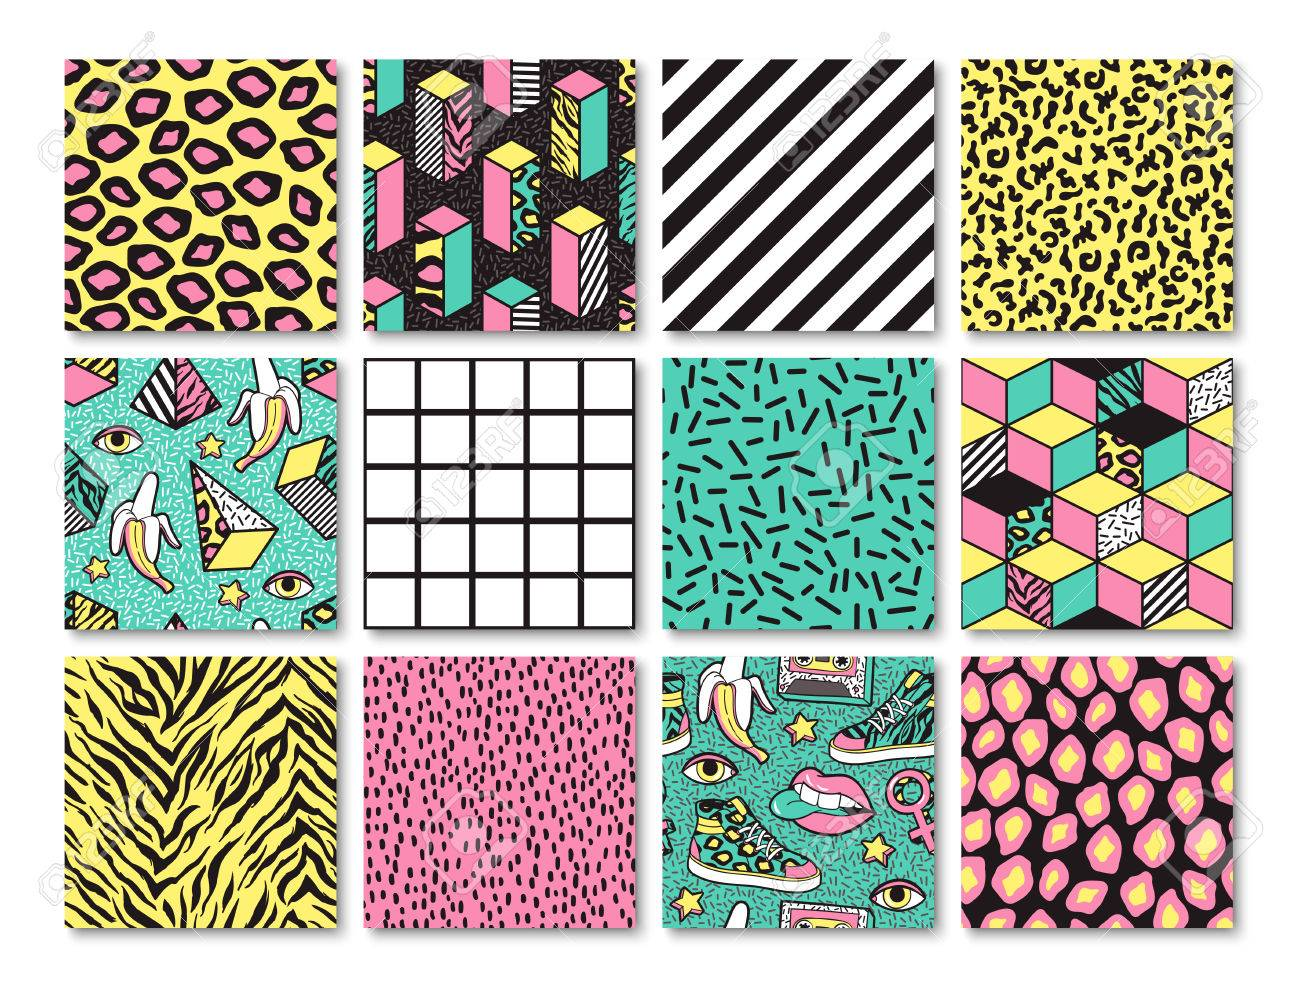 Set of seamless patterns in 80s-90s memphis style. - 81230169